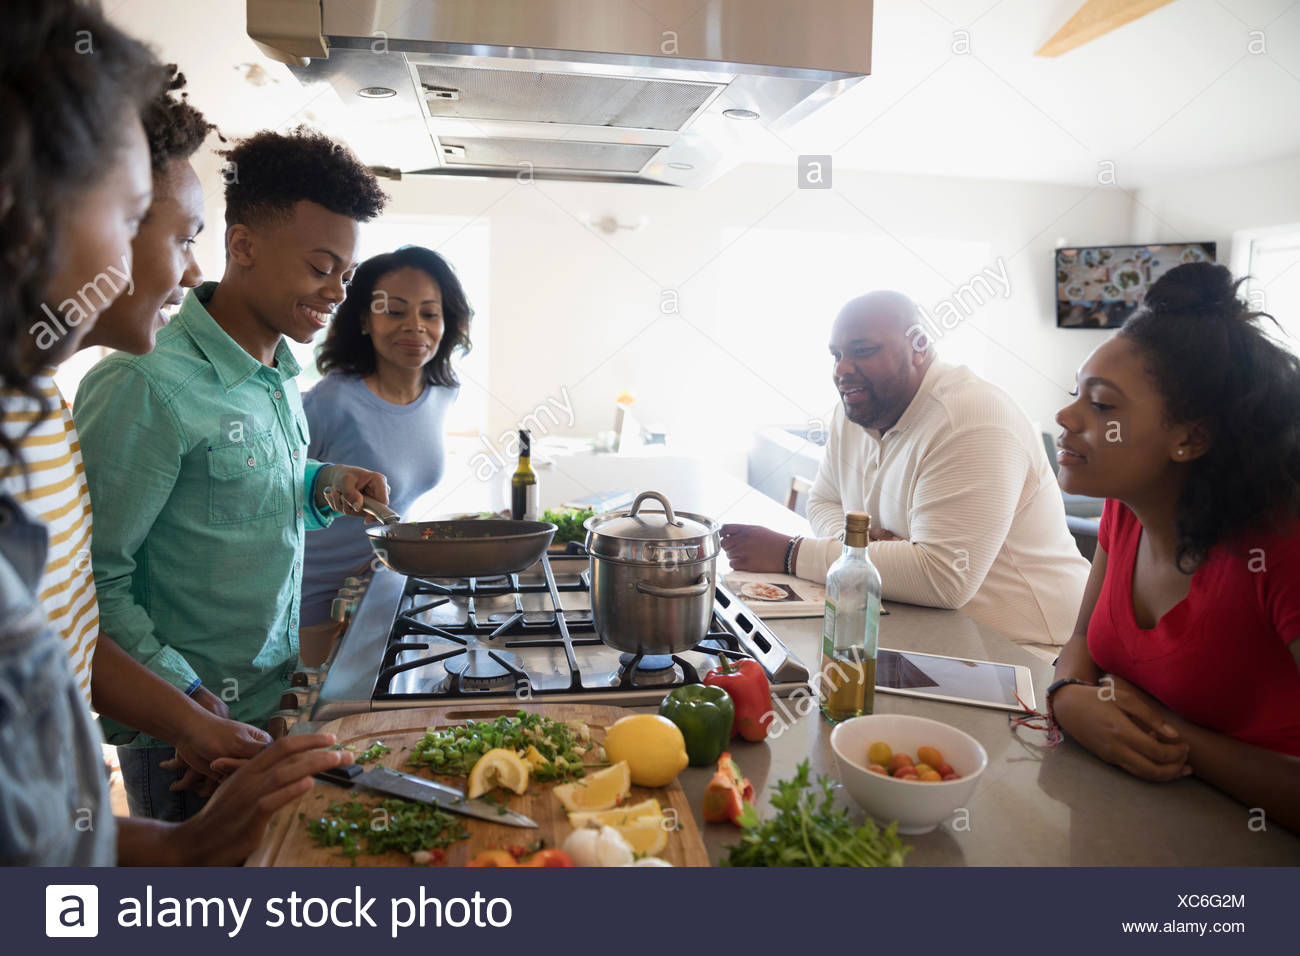 African American family cooking in kitchen - Stock Image